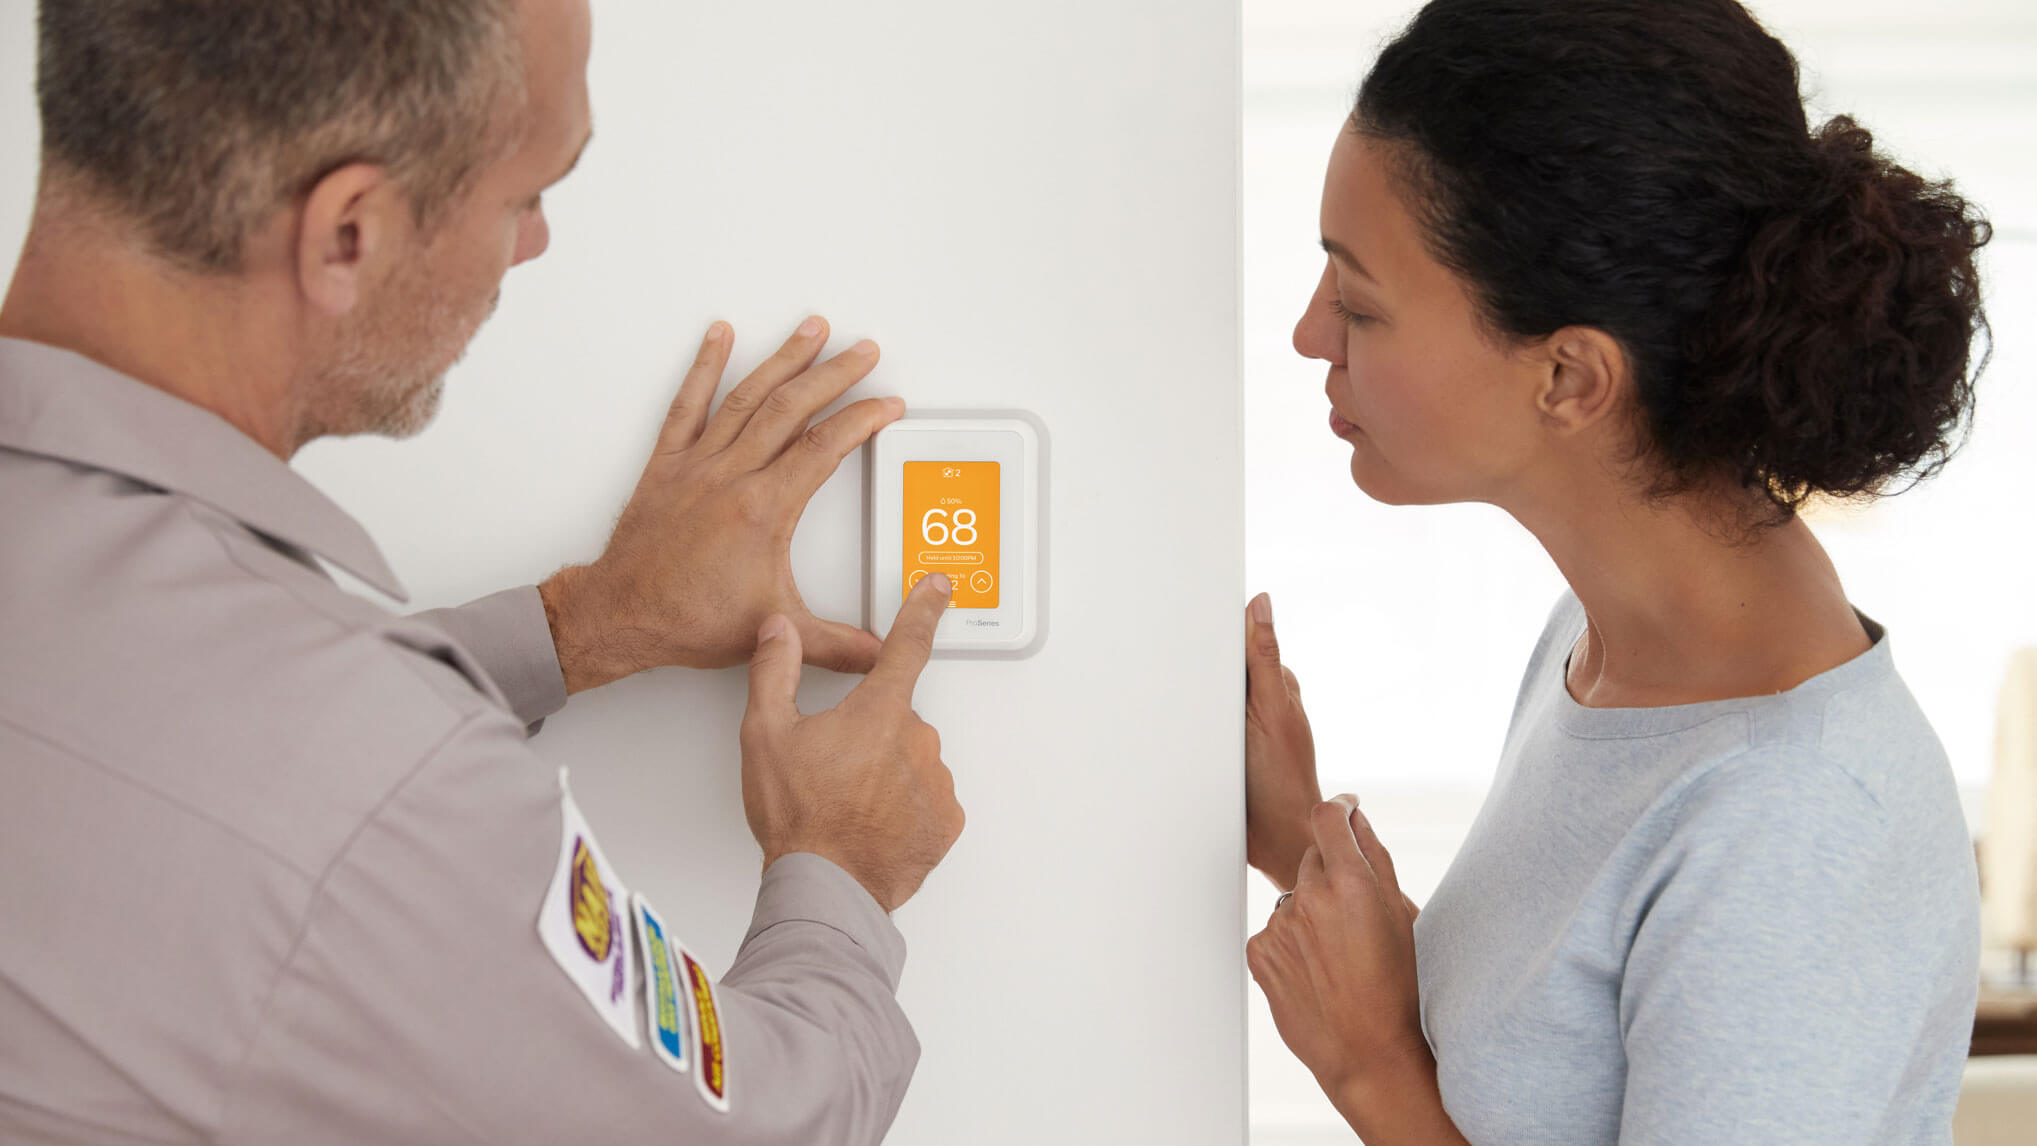 Connected Thermostats working with Total Connect 2.0